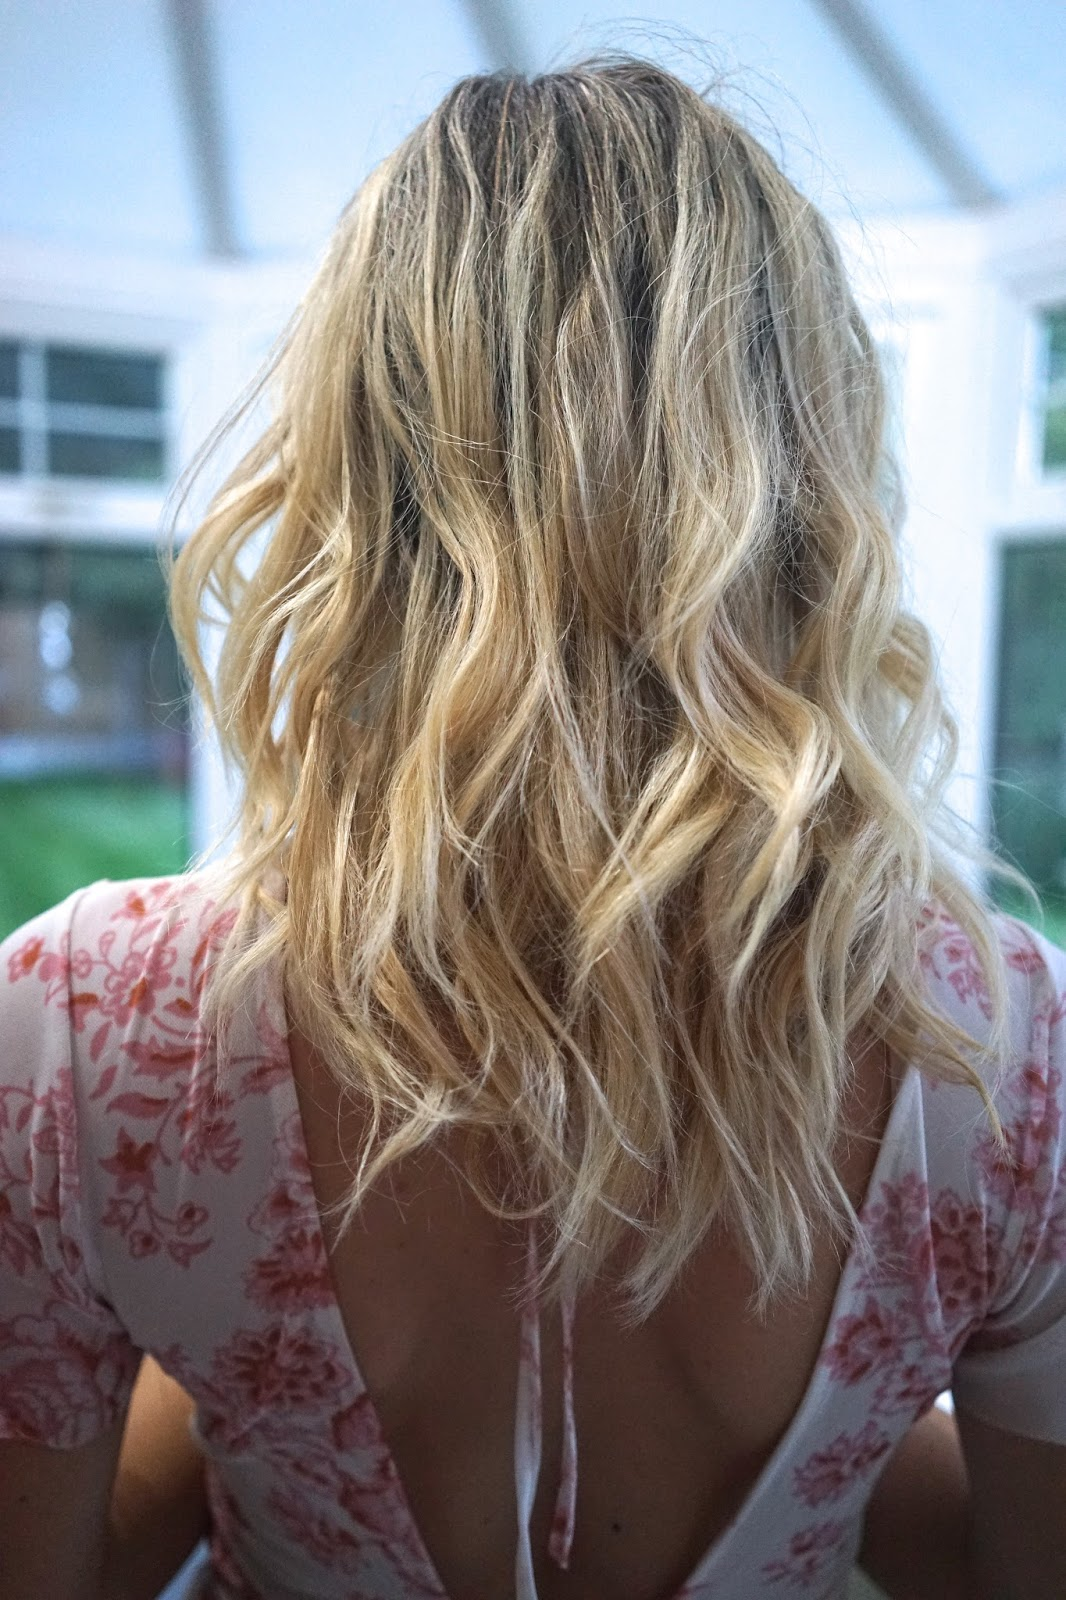 hair with ghd curling wand